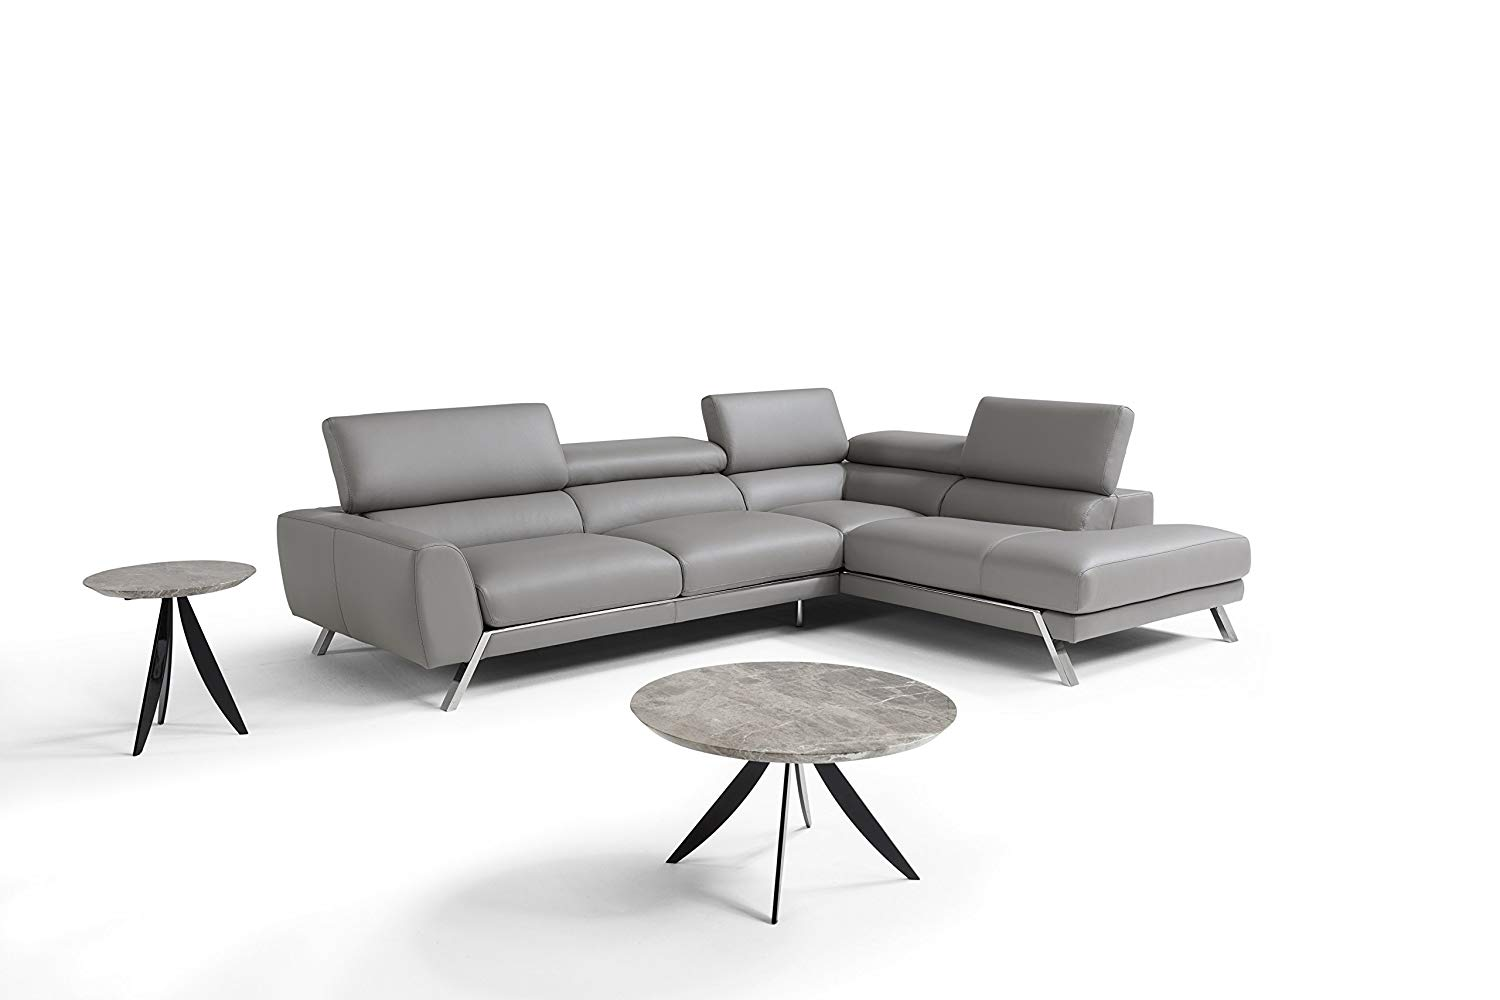 J and M Furniture 182883-RHFC Mood RHF Chaise 592 Grigio Medio Premium Leather Sectional